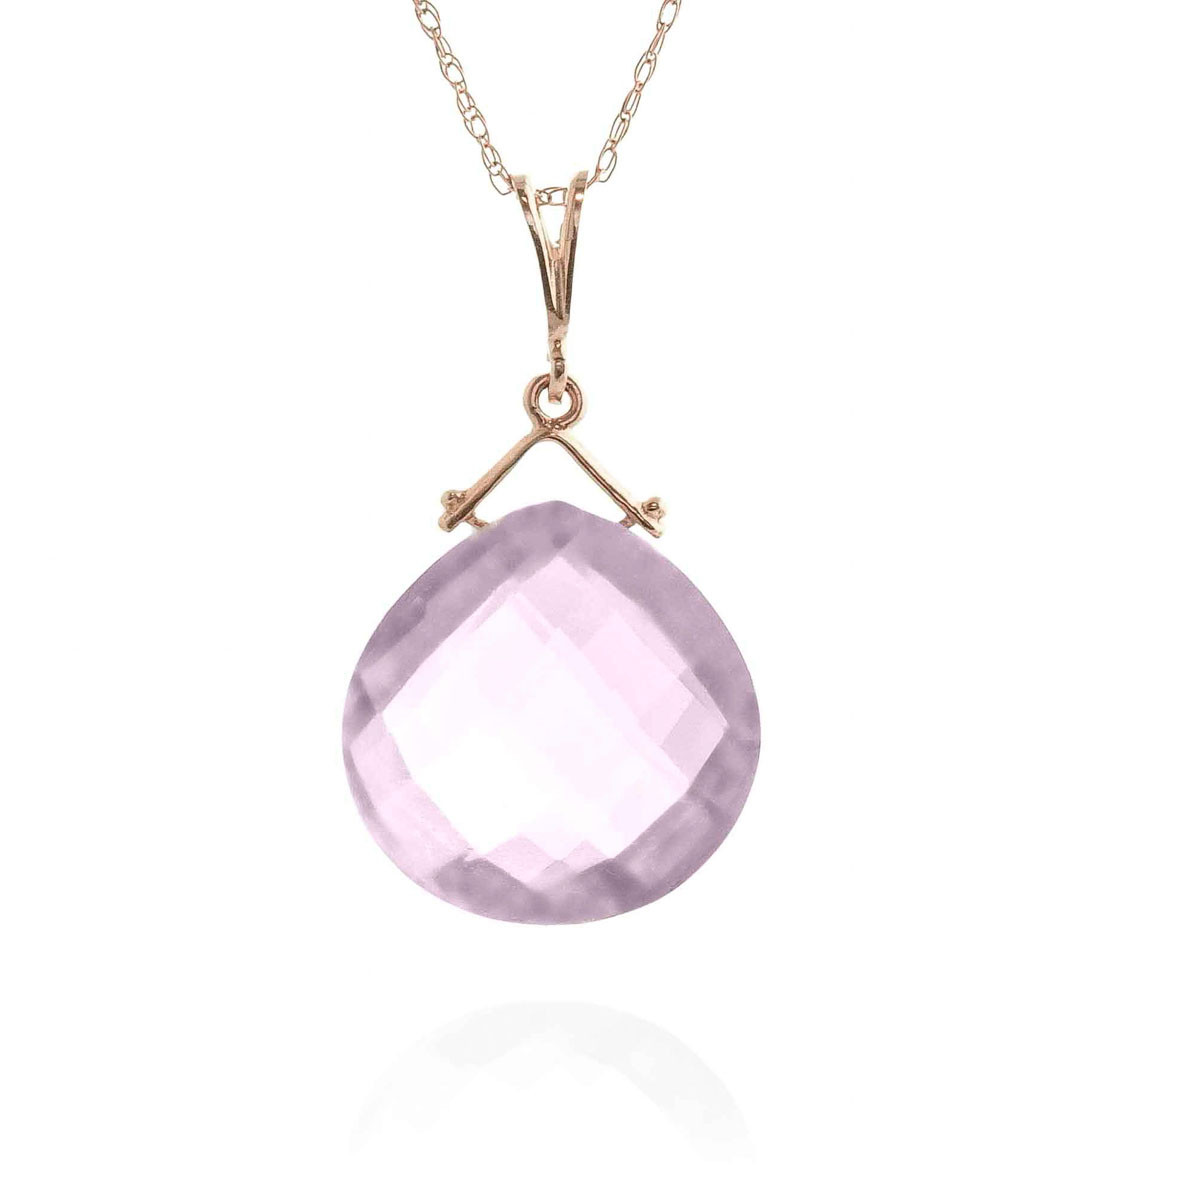 Amethyst Elliptical Pendant Necklace 8.5 ct in 9ct Rose Gold